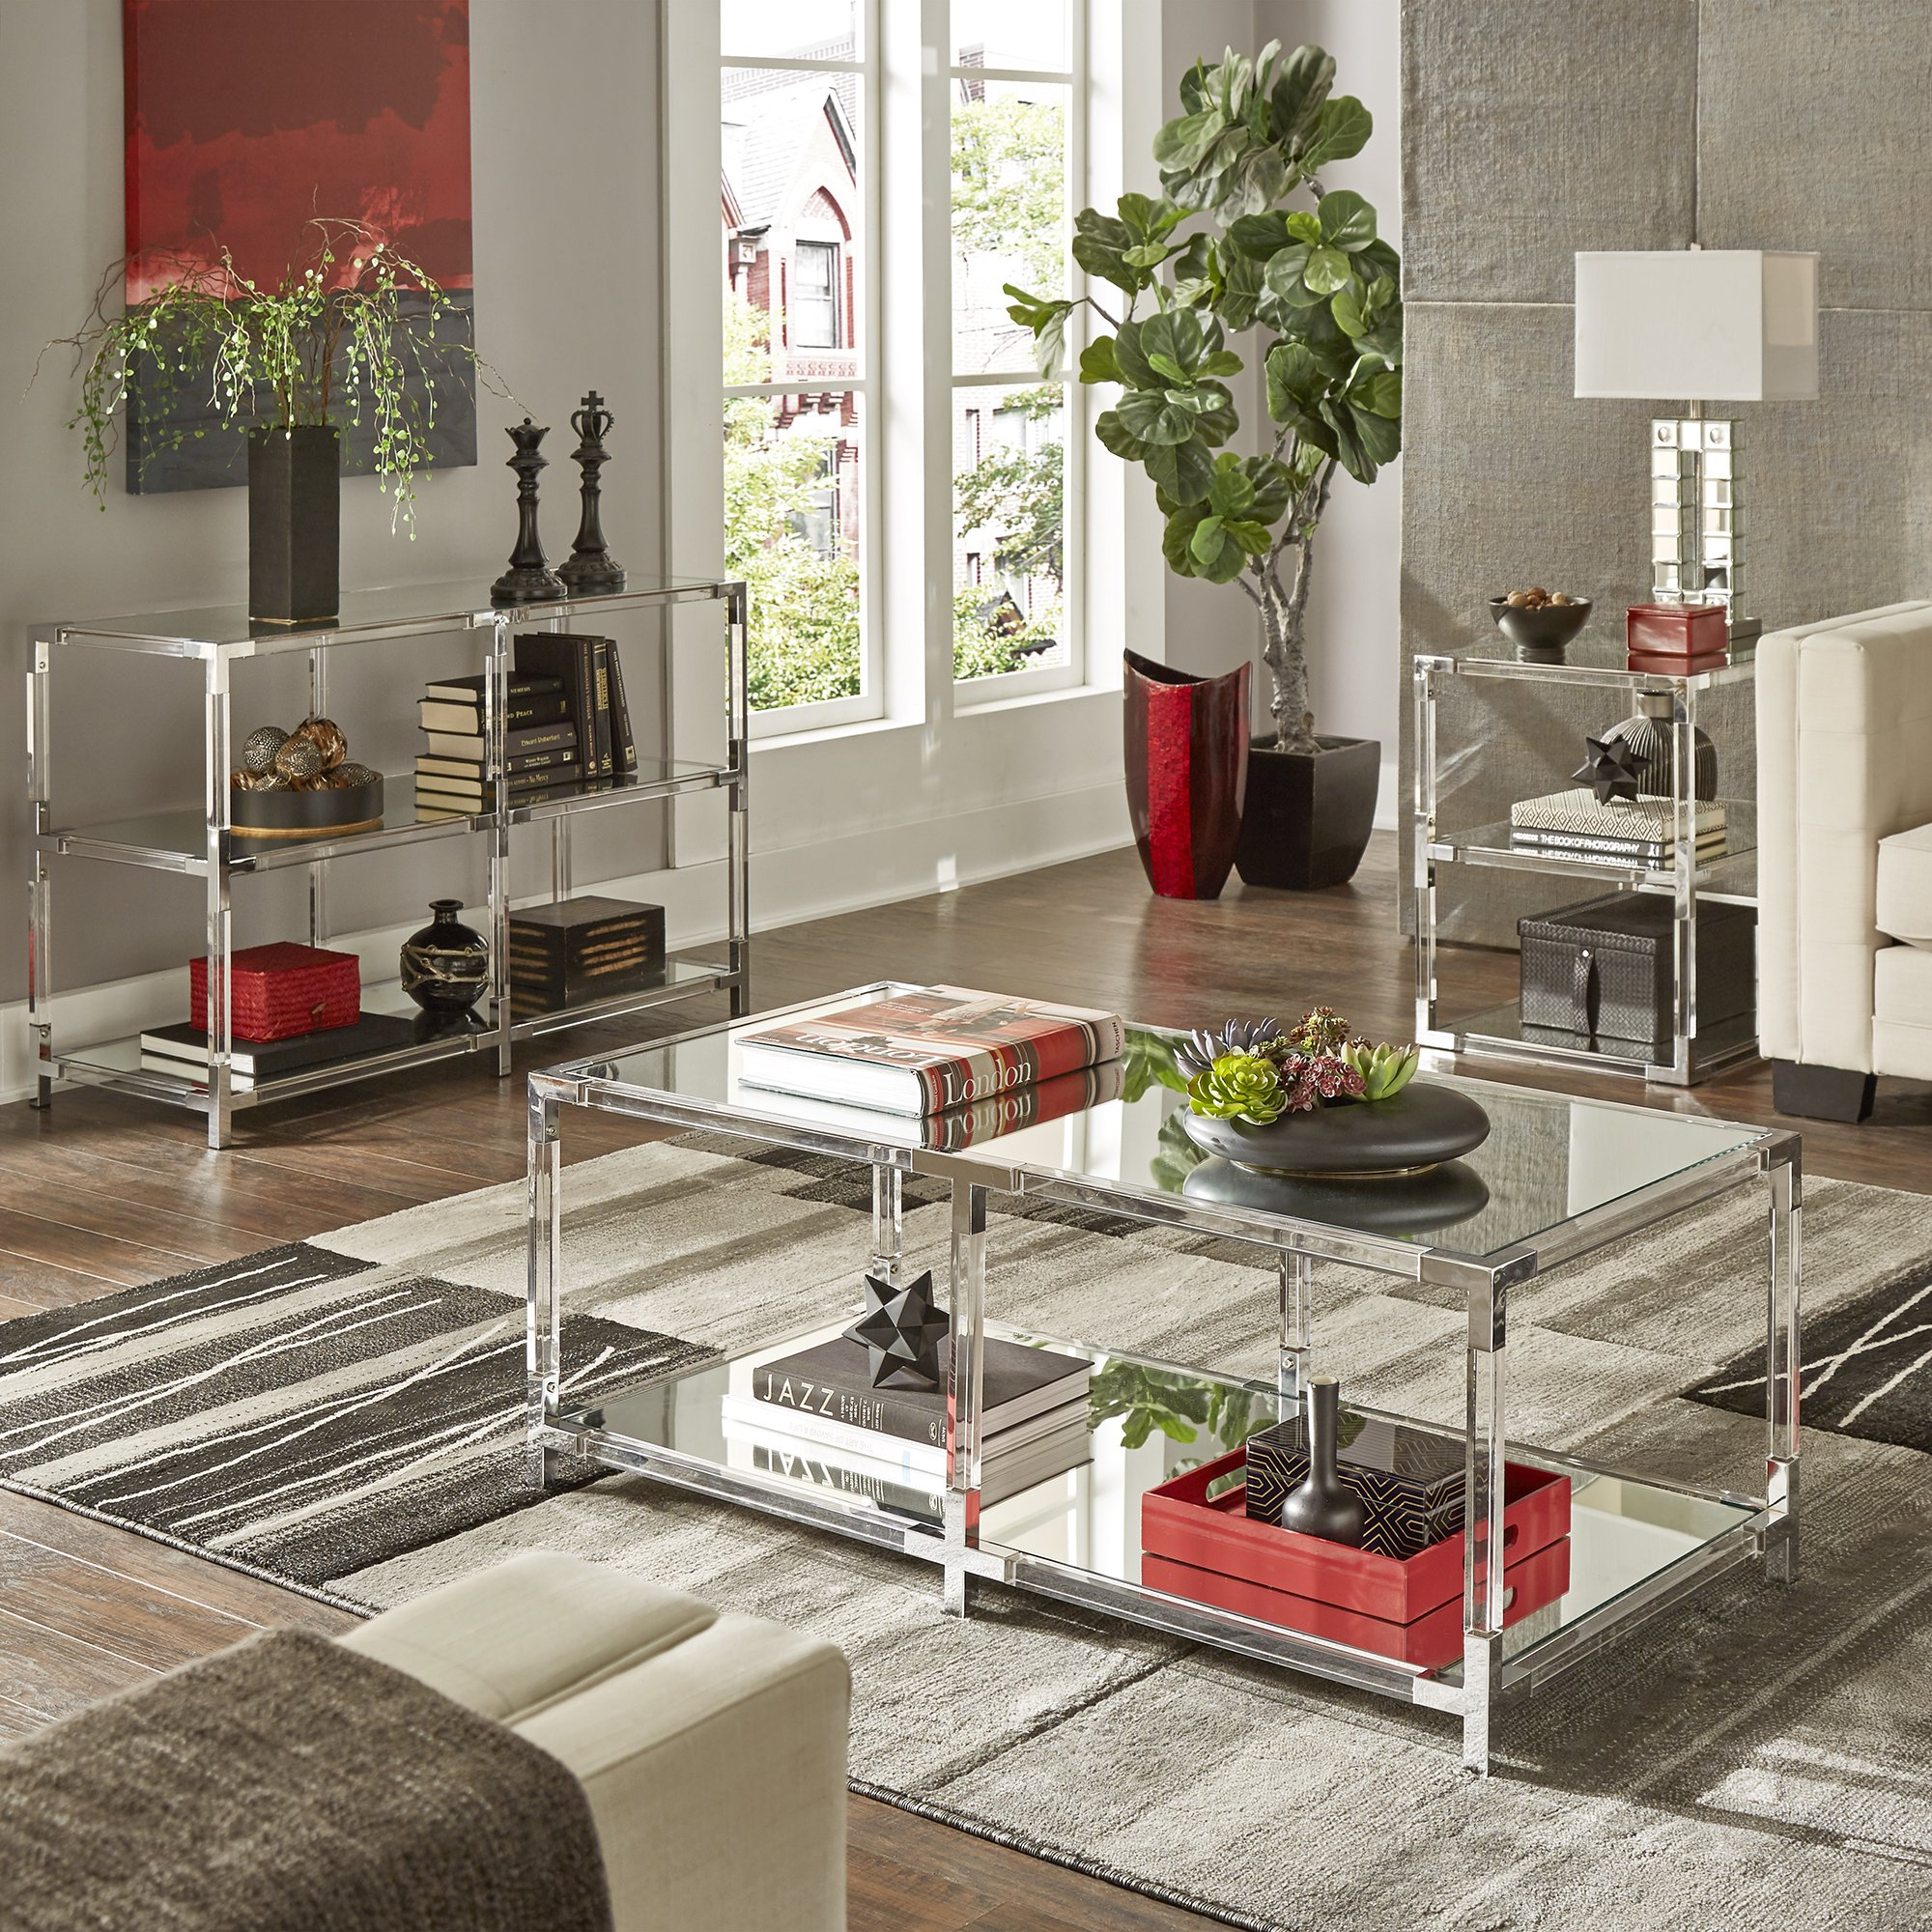 cyrus clear chrome corner mirrored shelf accent tables inspire table for dining room bold free shipping today cast iron patio furniture living packages lighthouse lamps nautical